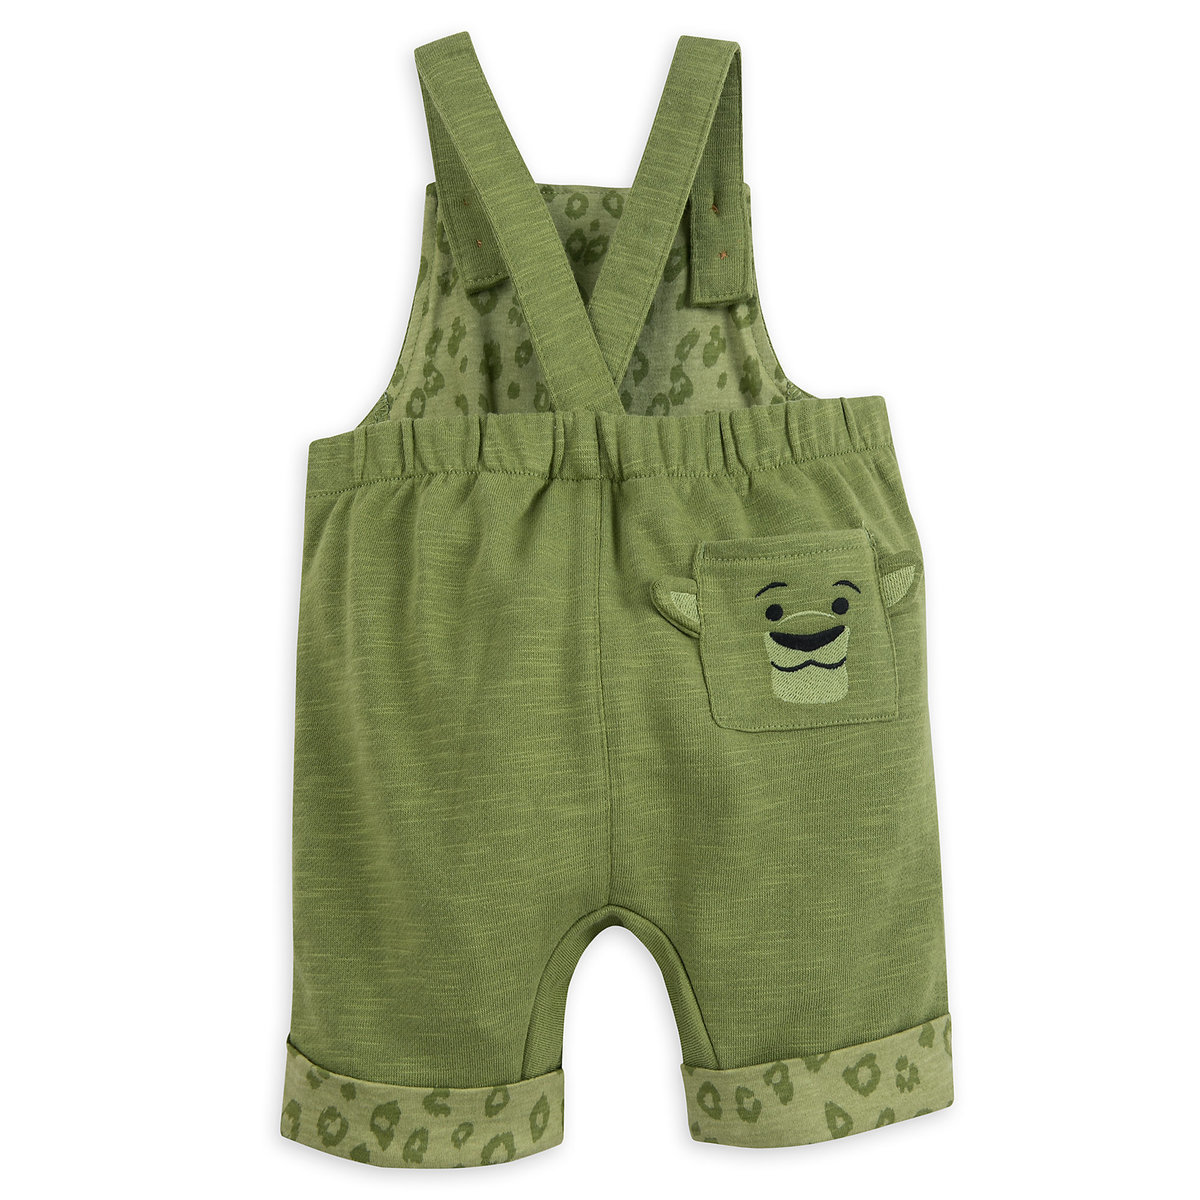 The Jungle Book Dungaree Set For Baby Shopdisney